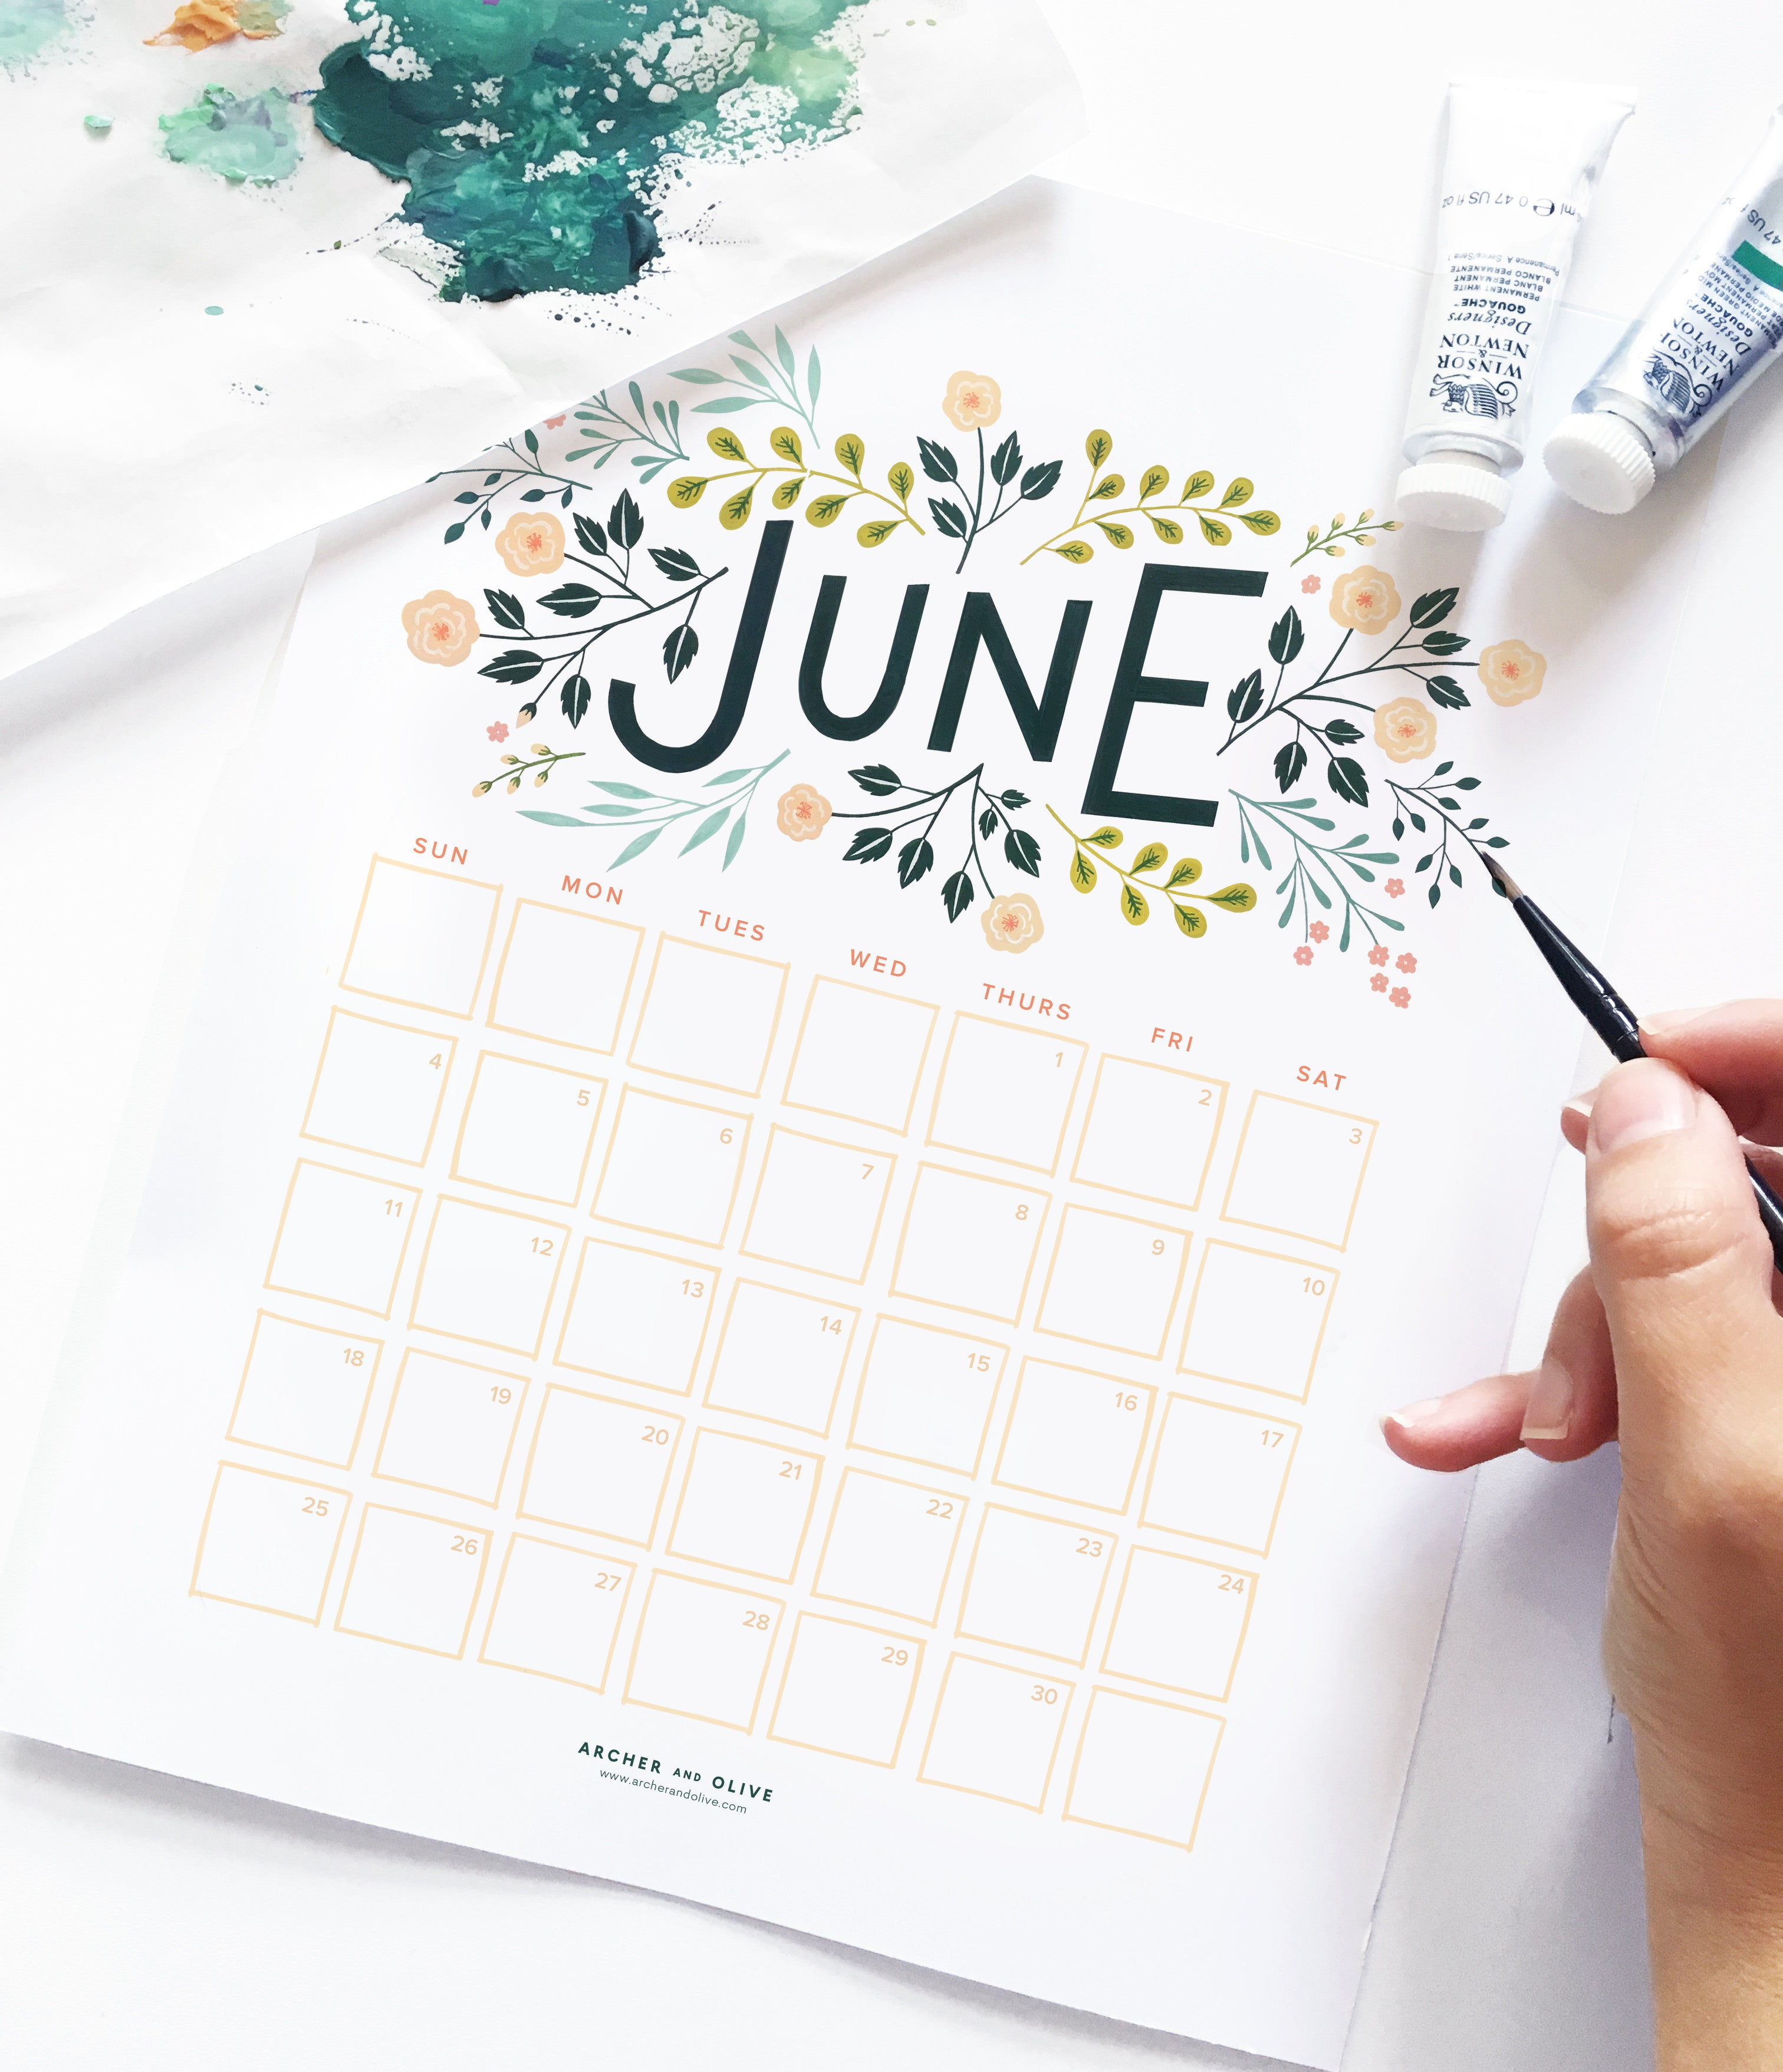 June Calendar Printable.June Calendar Printable Archer And Olive